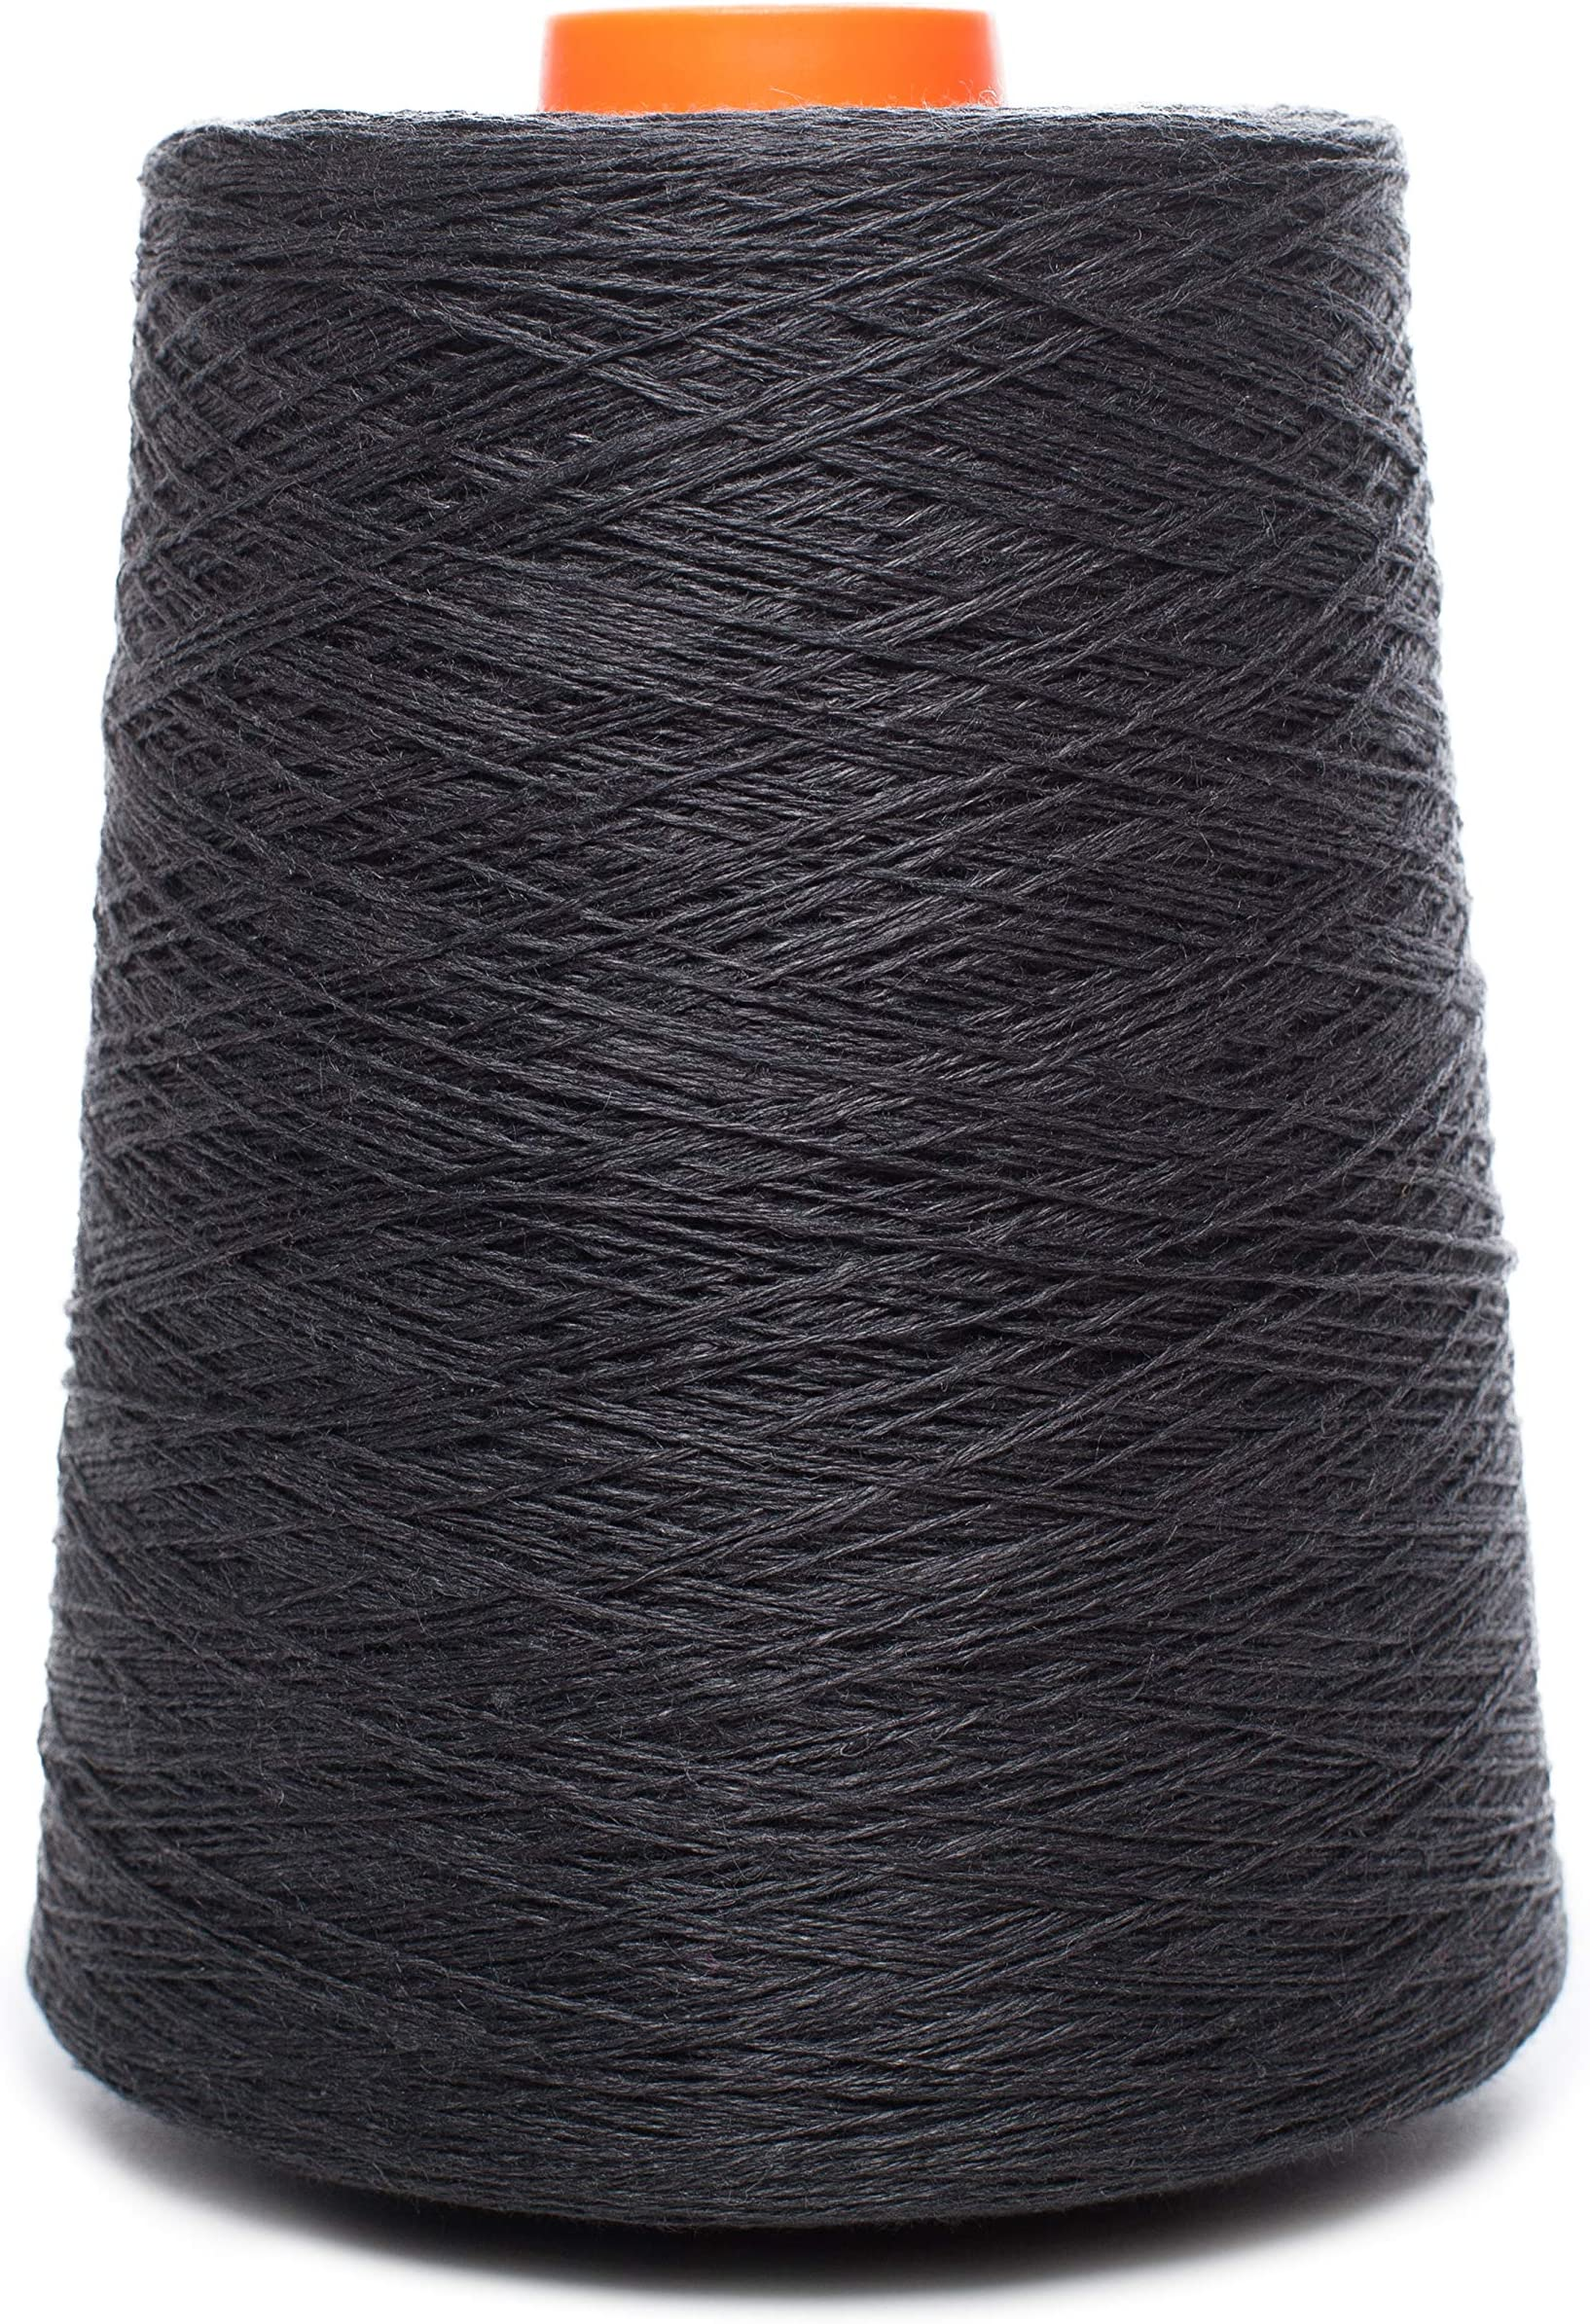 2-ply One-color or melange threads available. 1-ply 3-ply and 4-ply 100/% linen threads Black color